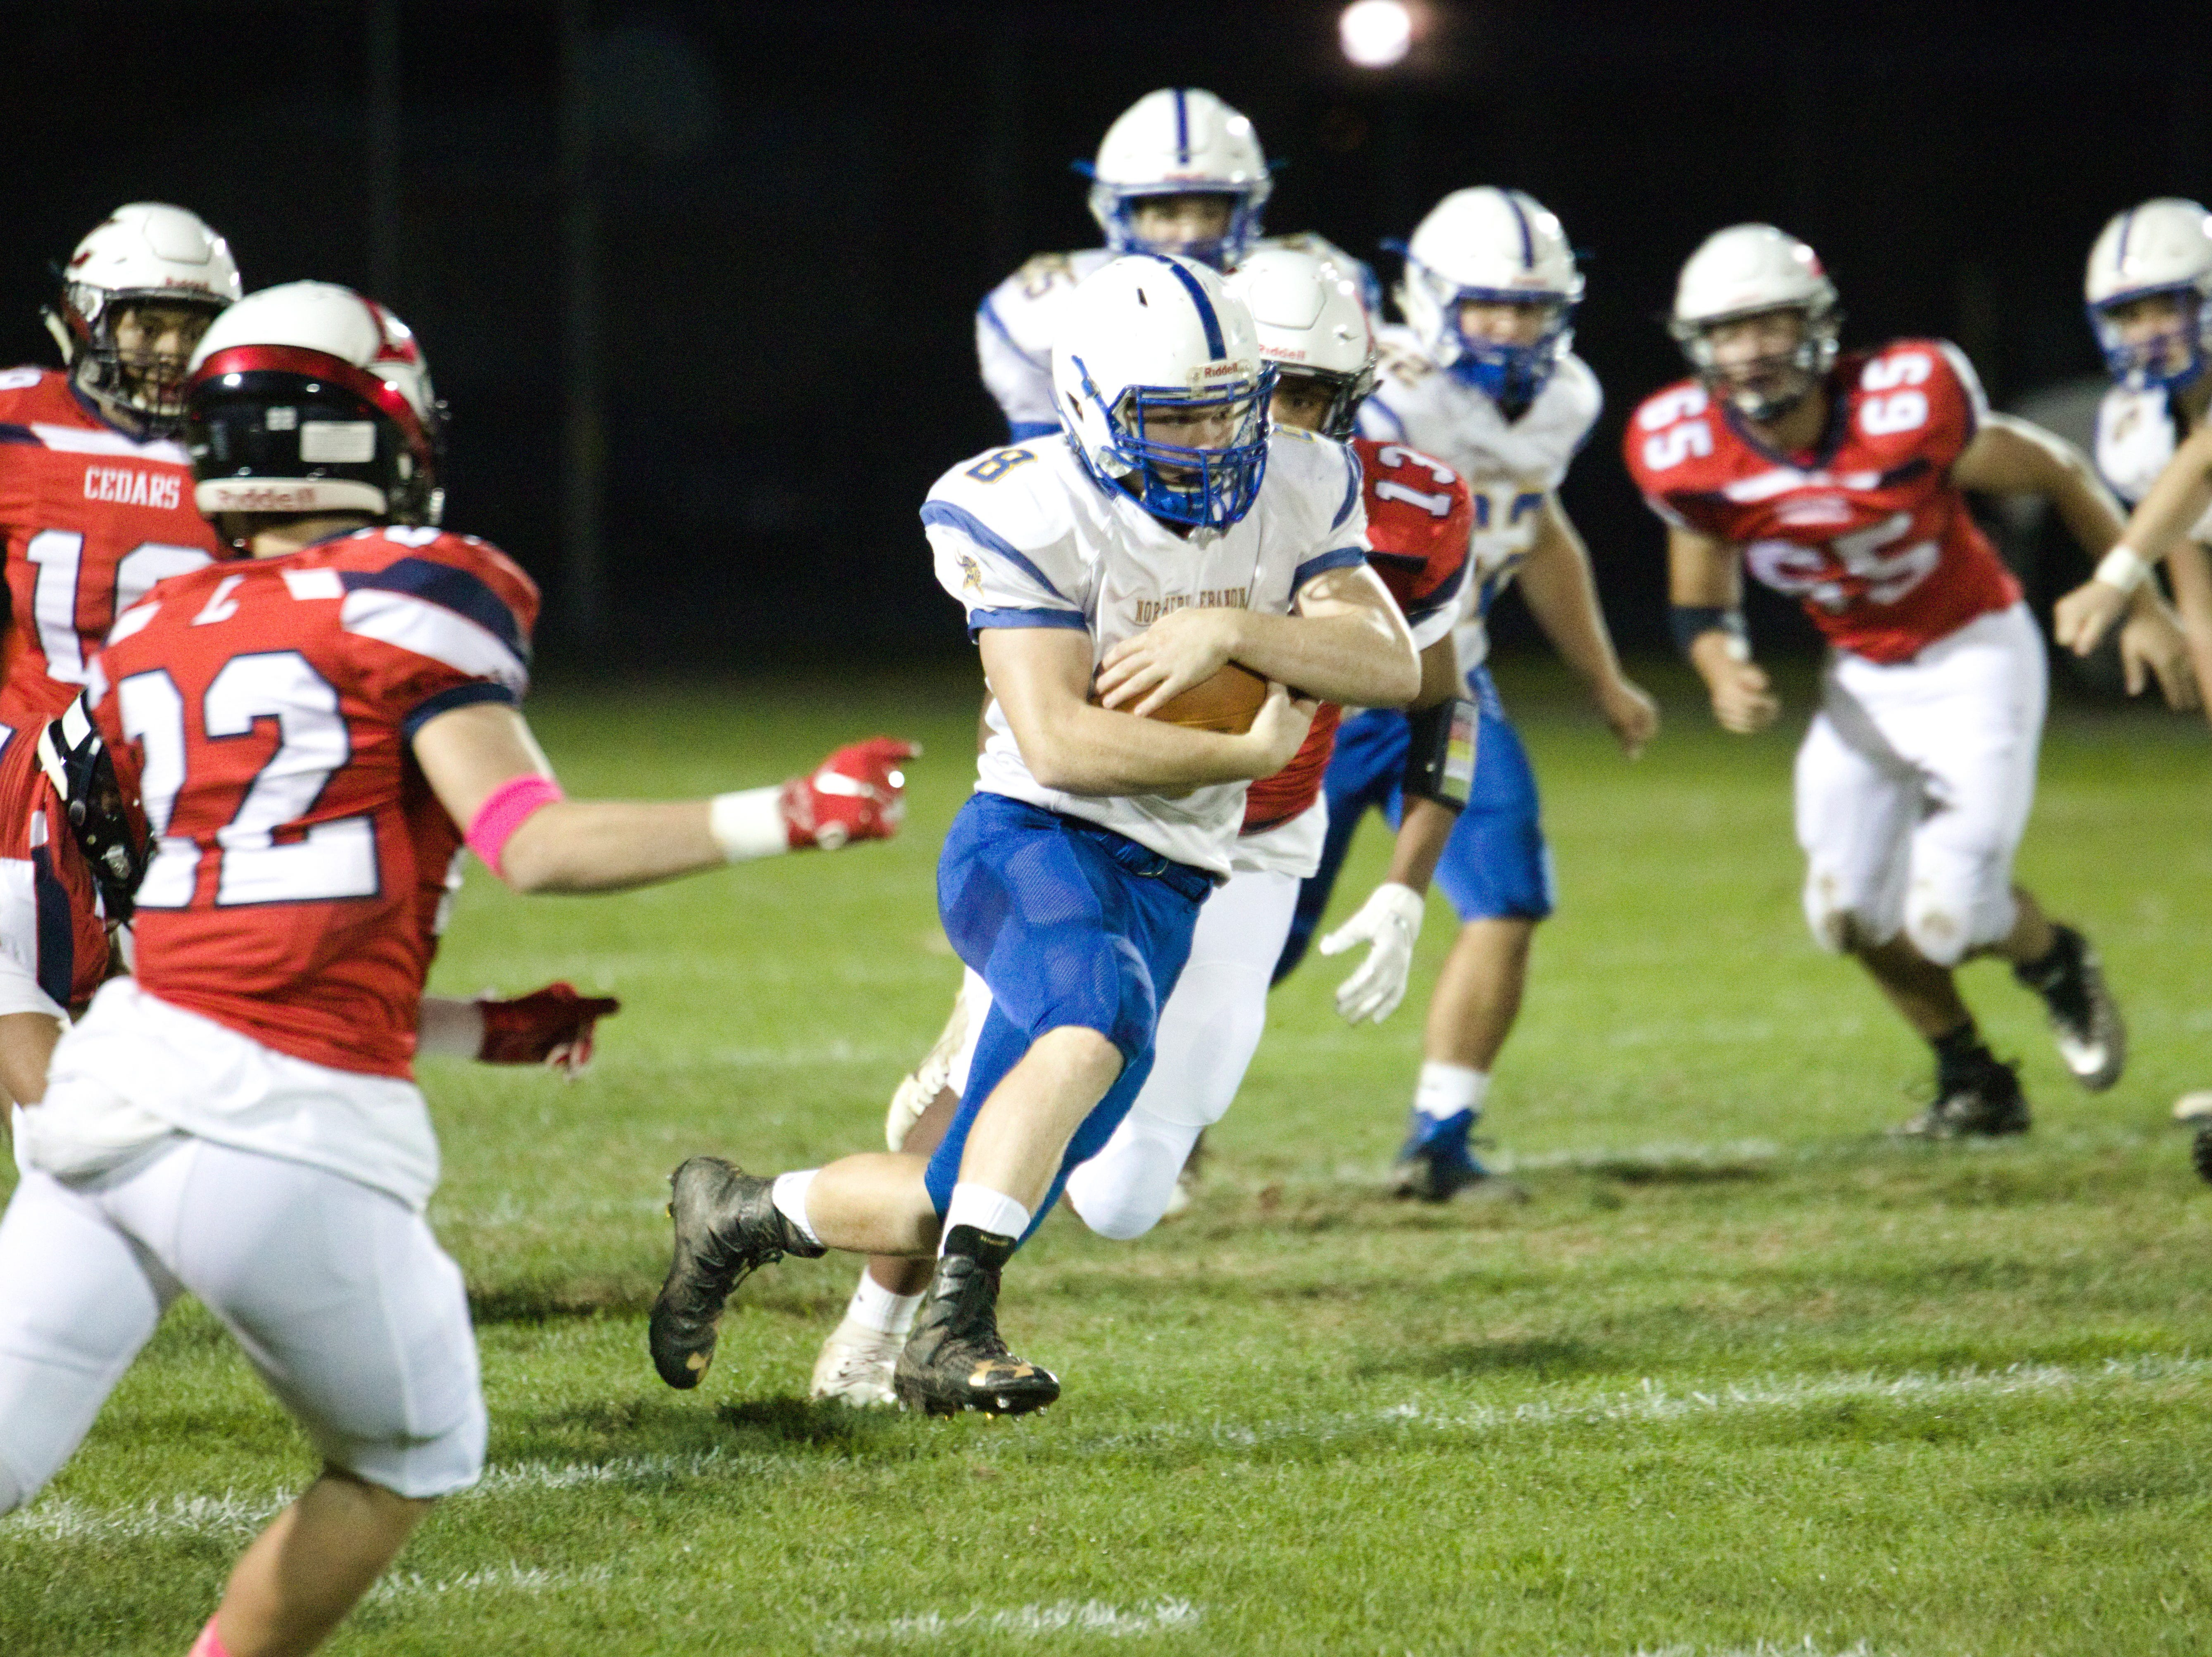 Northern Lebanon's Ethan Herb finds some room to run.